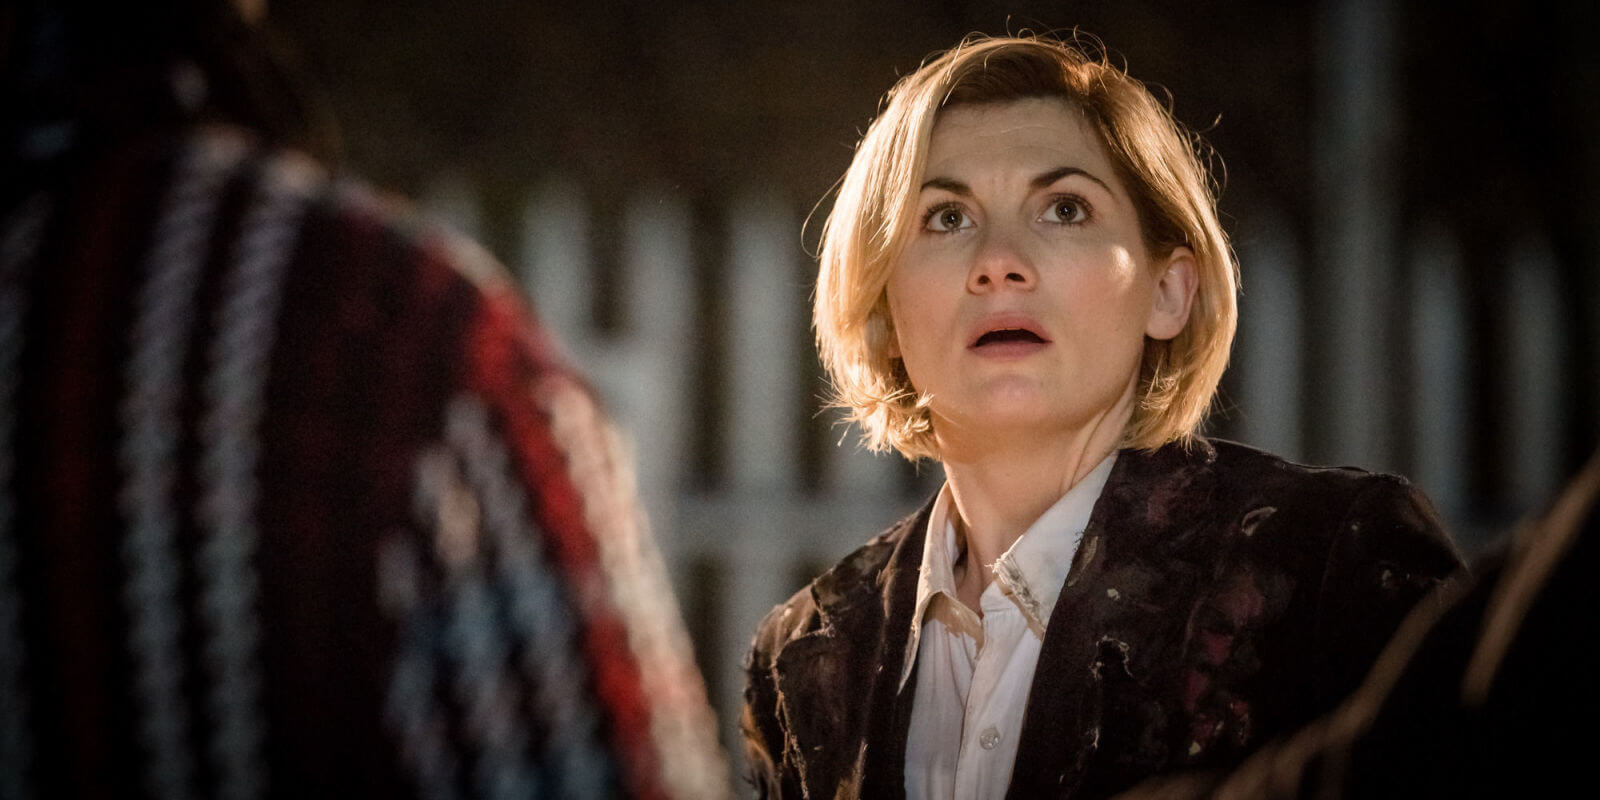 starburstmagazine.com - DOCTOR WHO: BBC Confirm Series 12 to Broadcast in 2019